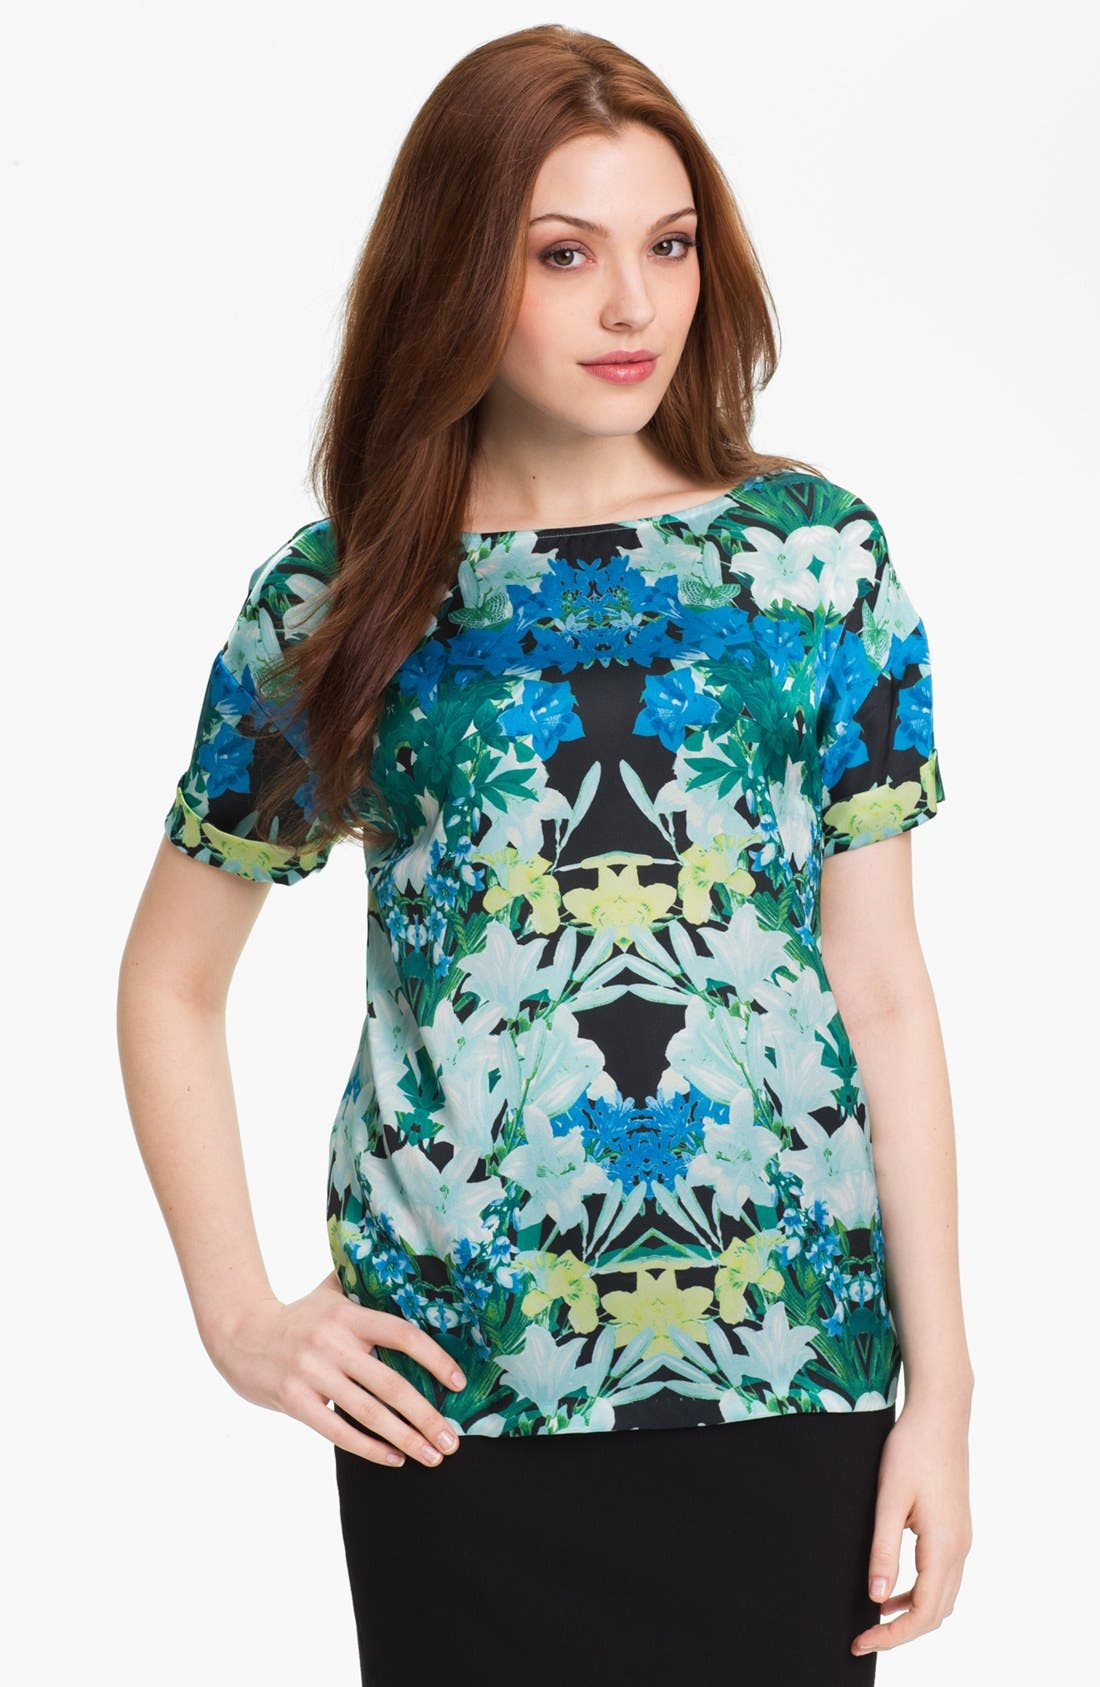 Alternate Image 1 Selected - Vince Camuto 'Spring Garland' Blouse (Petite)